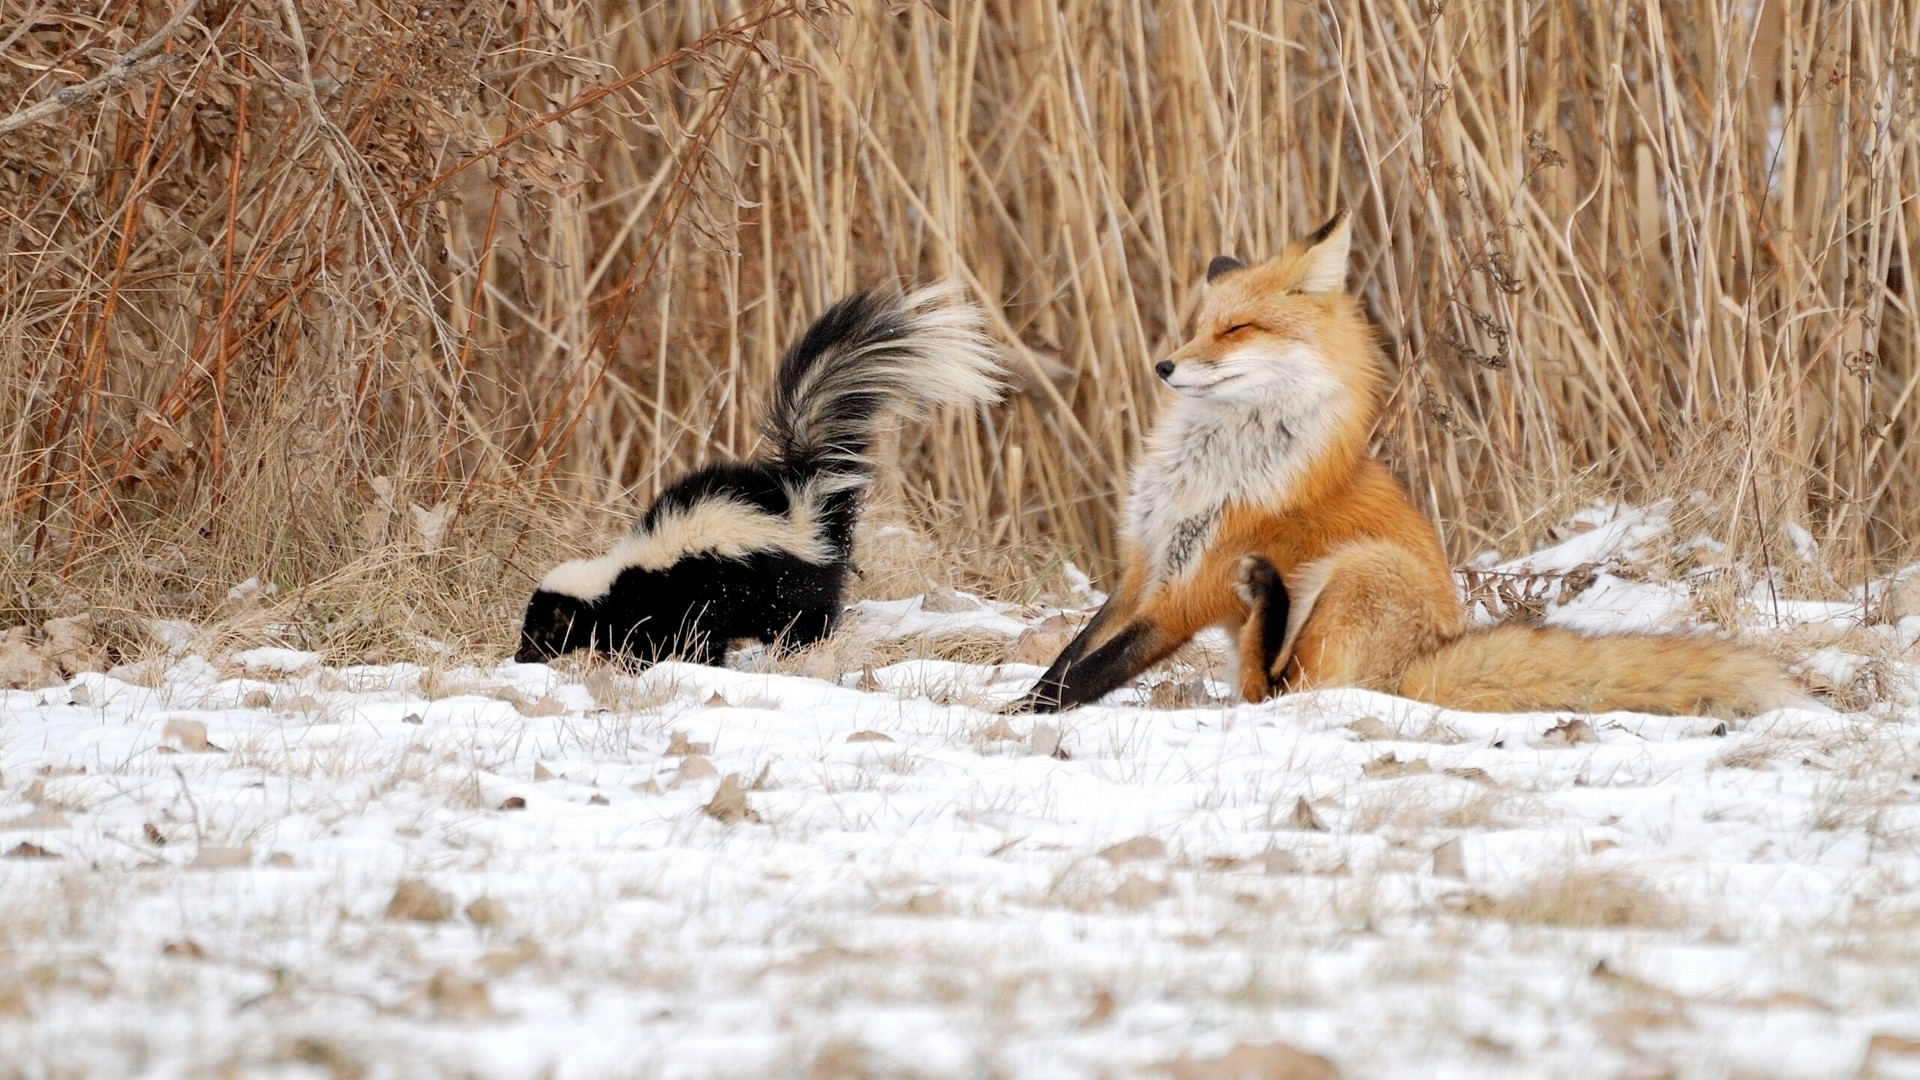 Free Download Funny Image Of Skunk Beside Reeds On Winter Hd 1080p